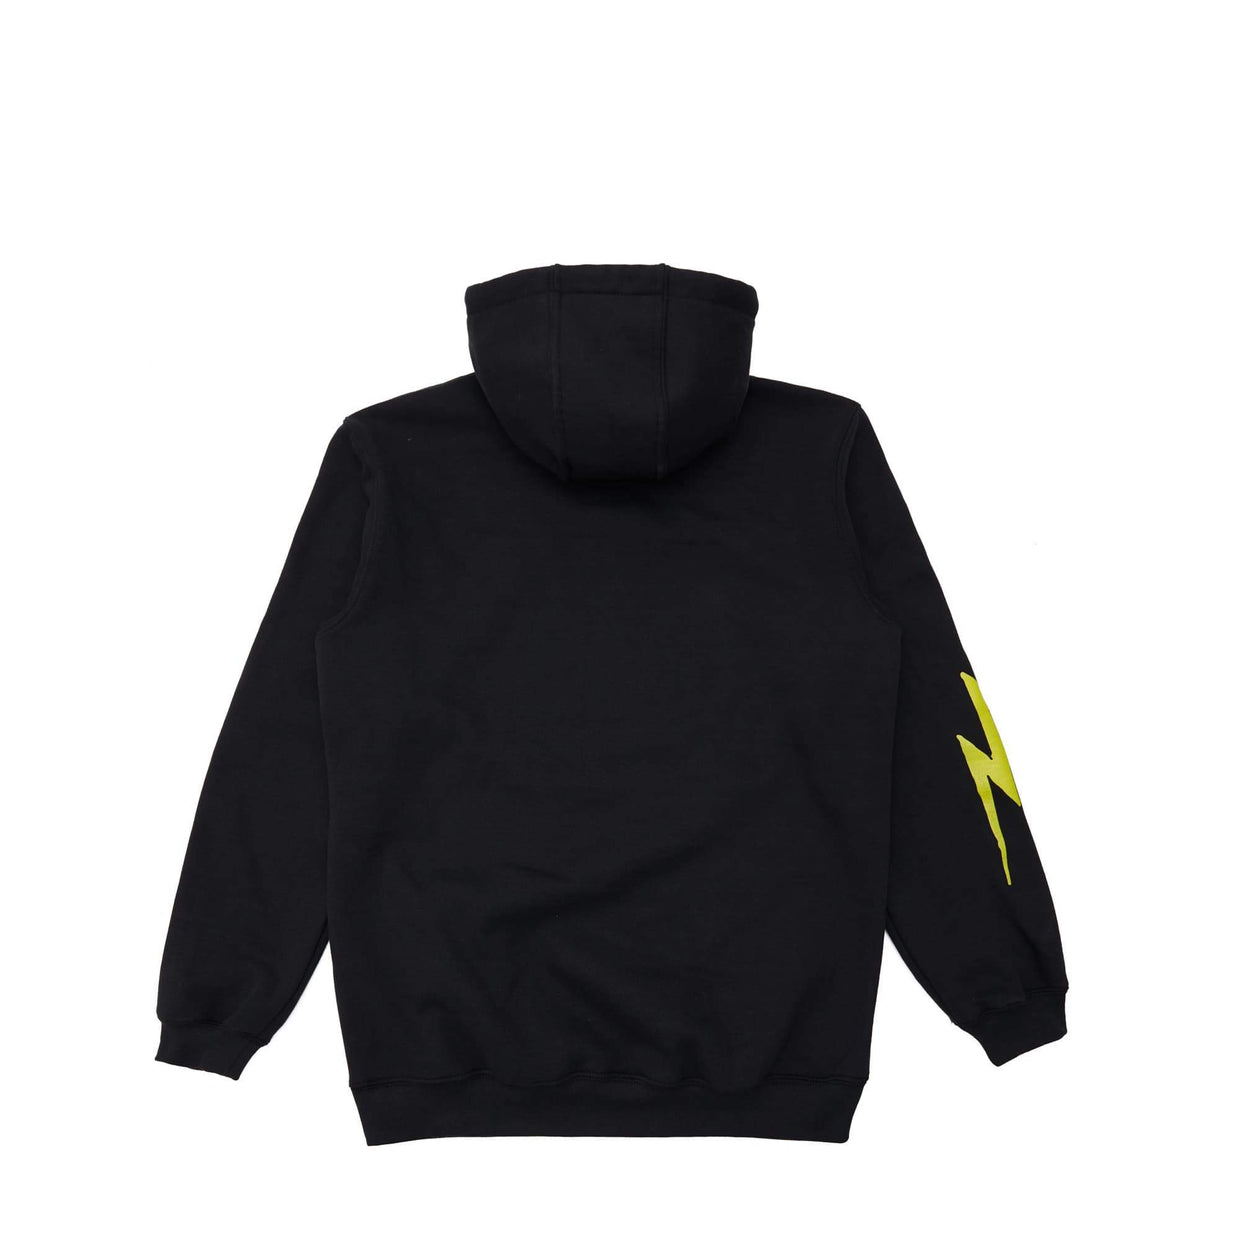 Andy Mineo x Carhartt 'Keep Clear' Pull Over Hoodie